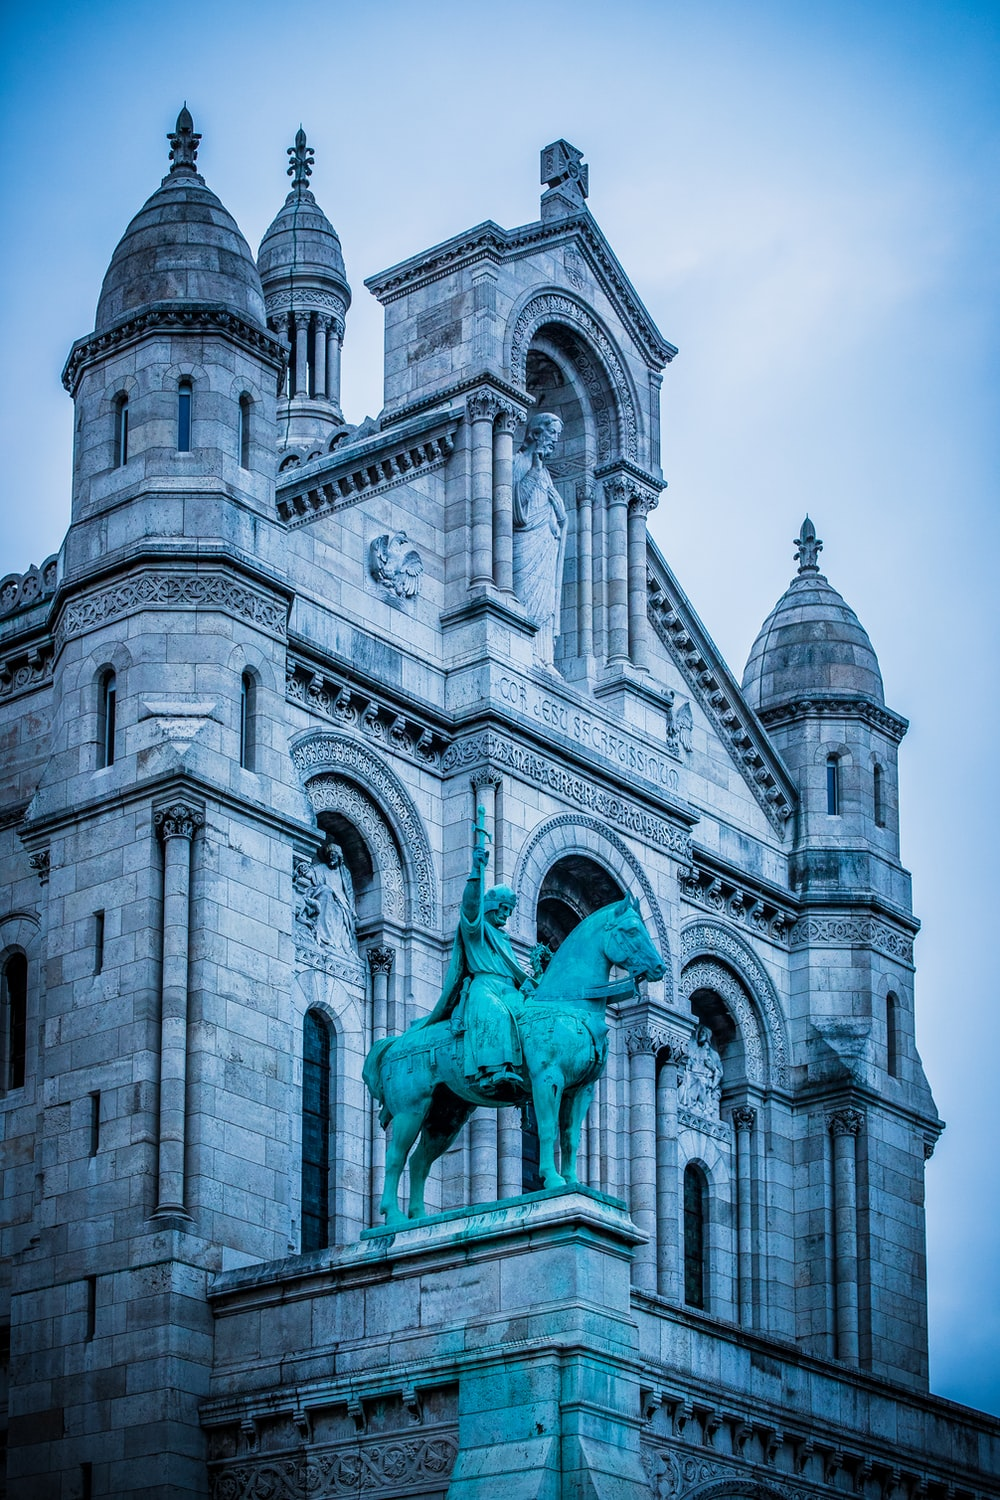 blue man on horse statue in front of cathedral